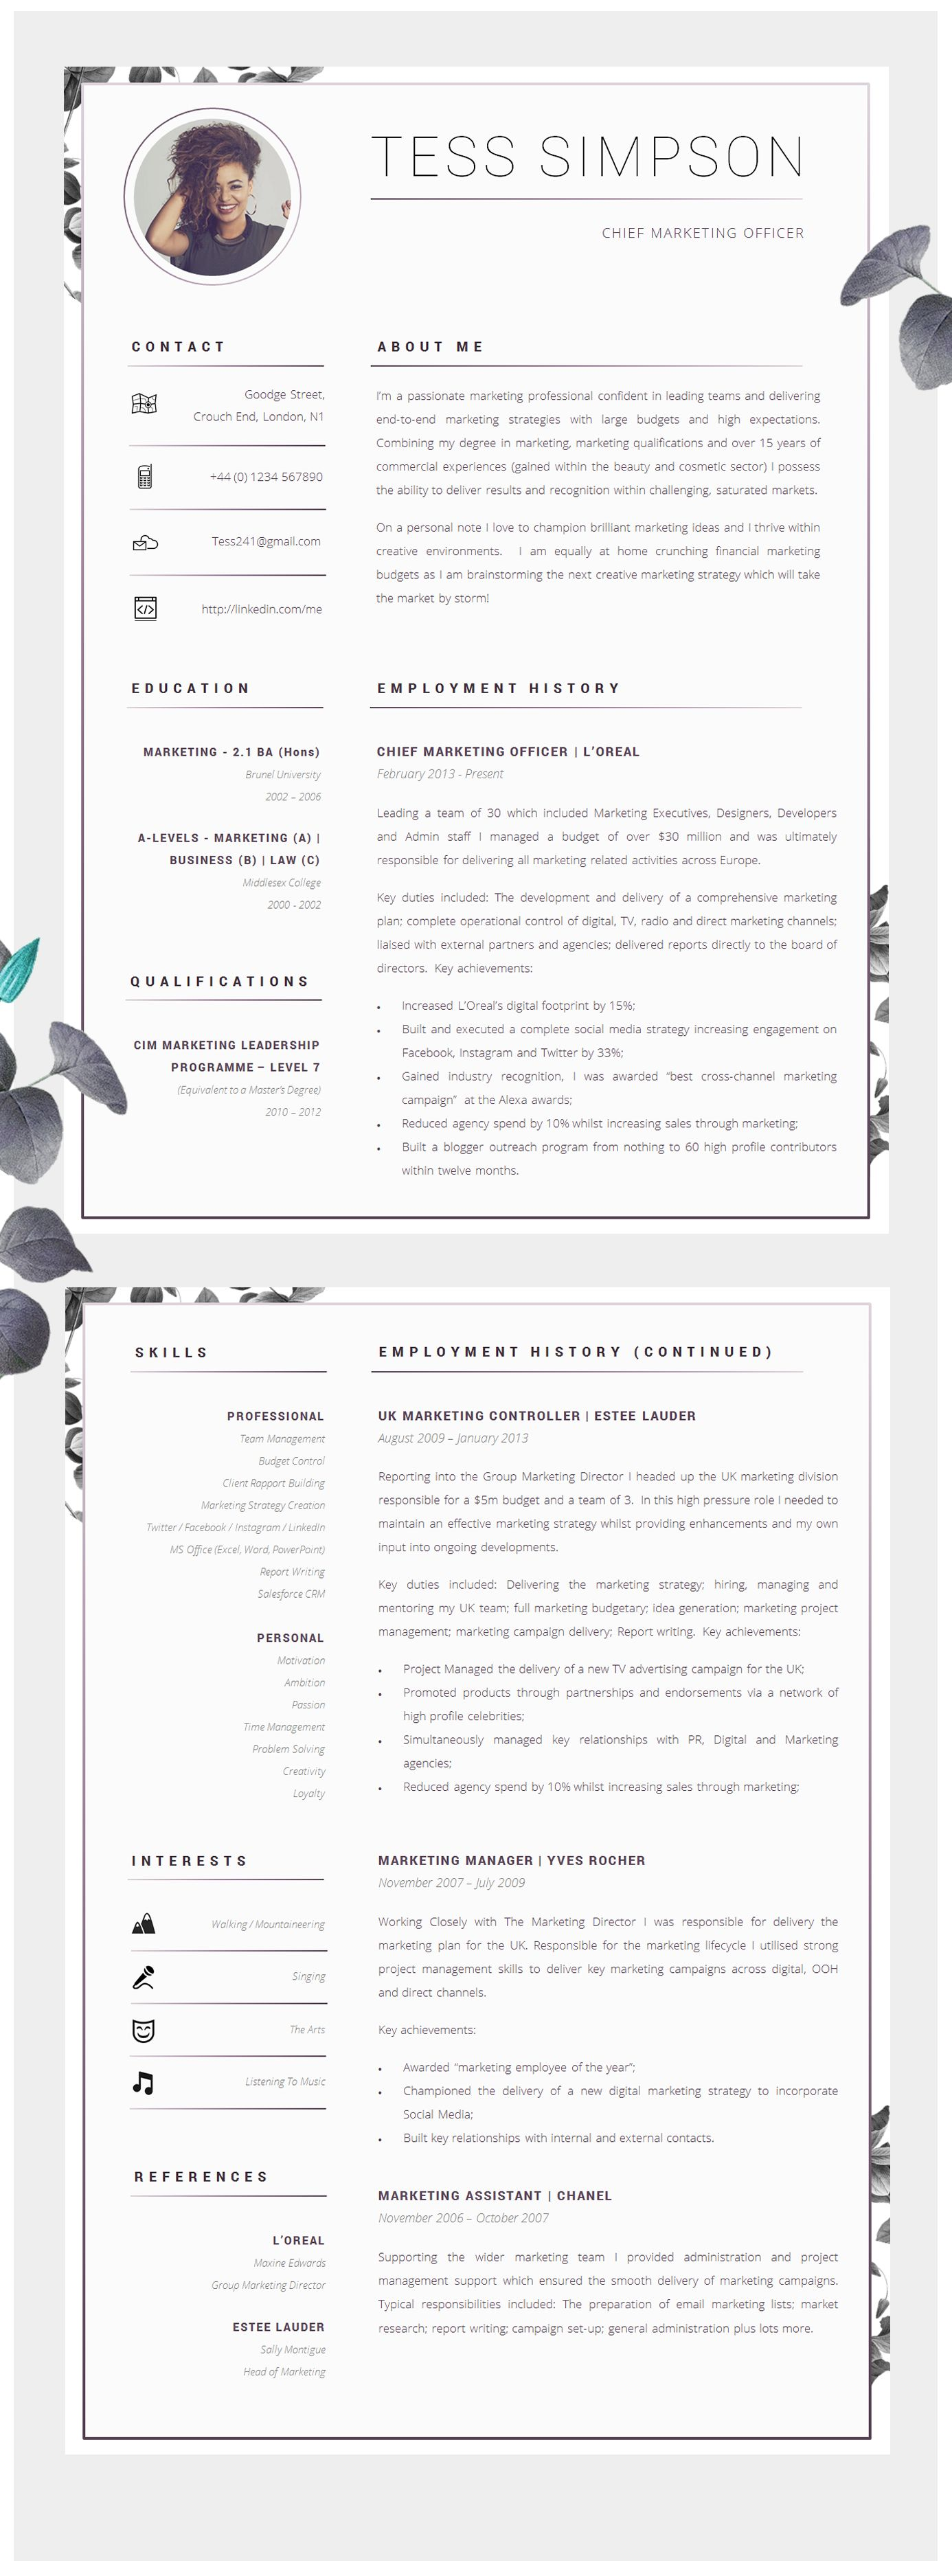 Cv template creative resume template two page professional cv cv design resume design cv resume matching cover letter job search advice download yelopaper Image collections